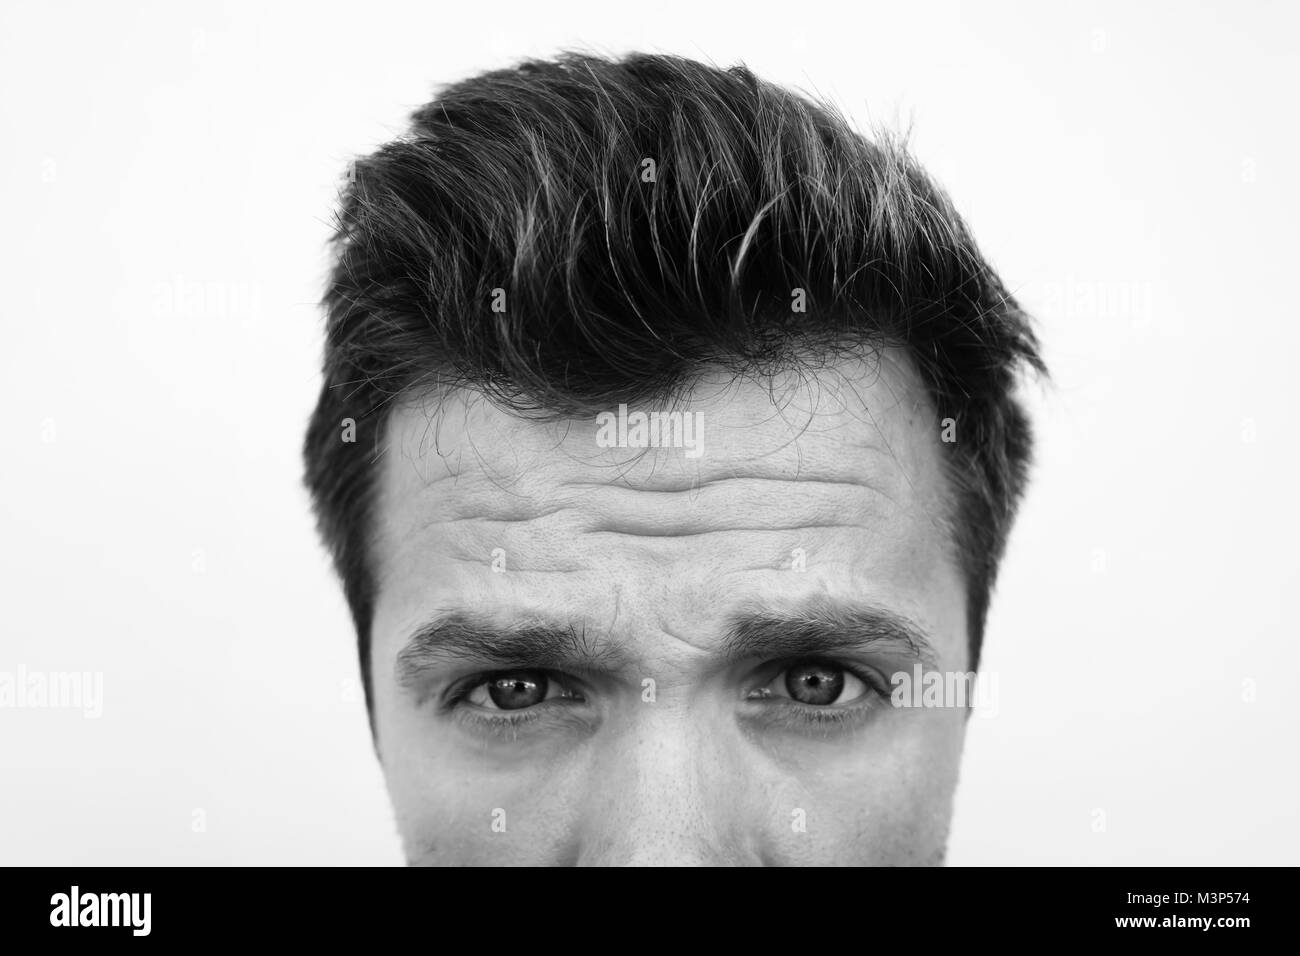 half face portrait of caucasian man with serious depression in monochrome black and white style. - Stock Image